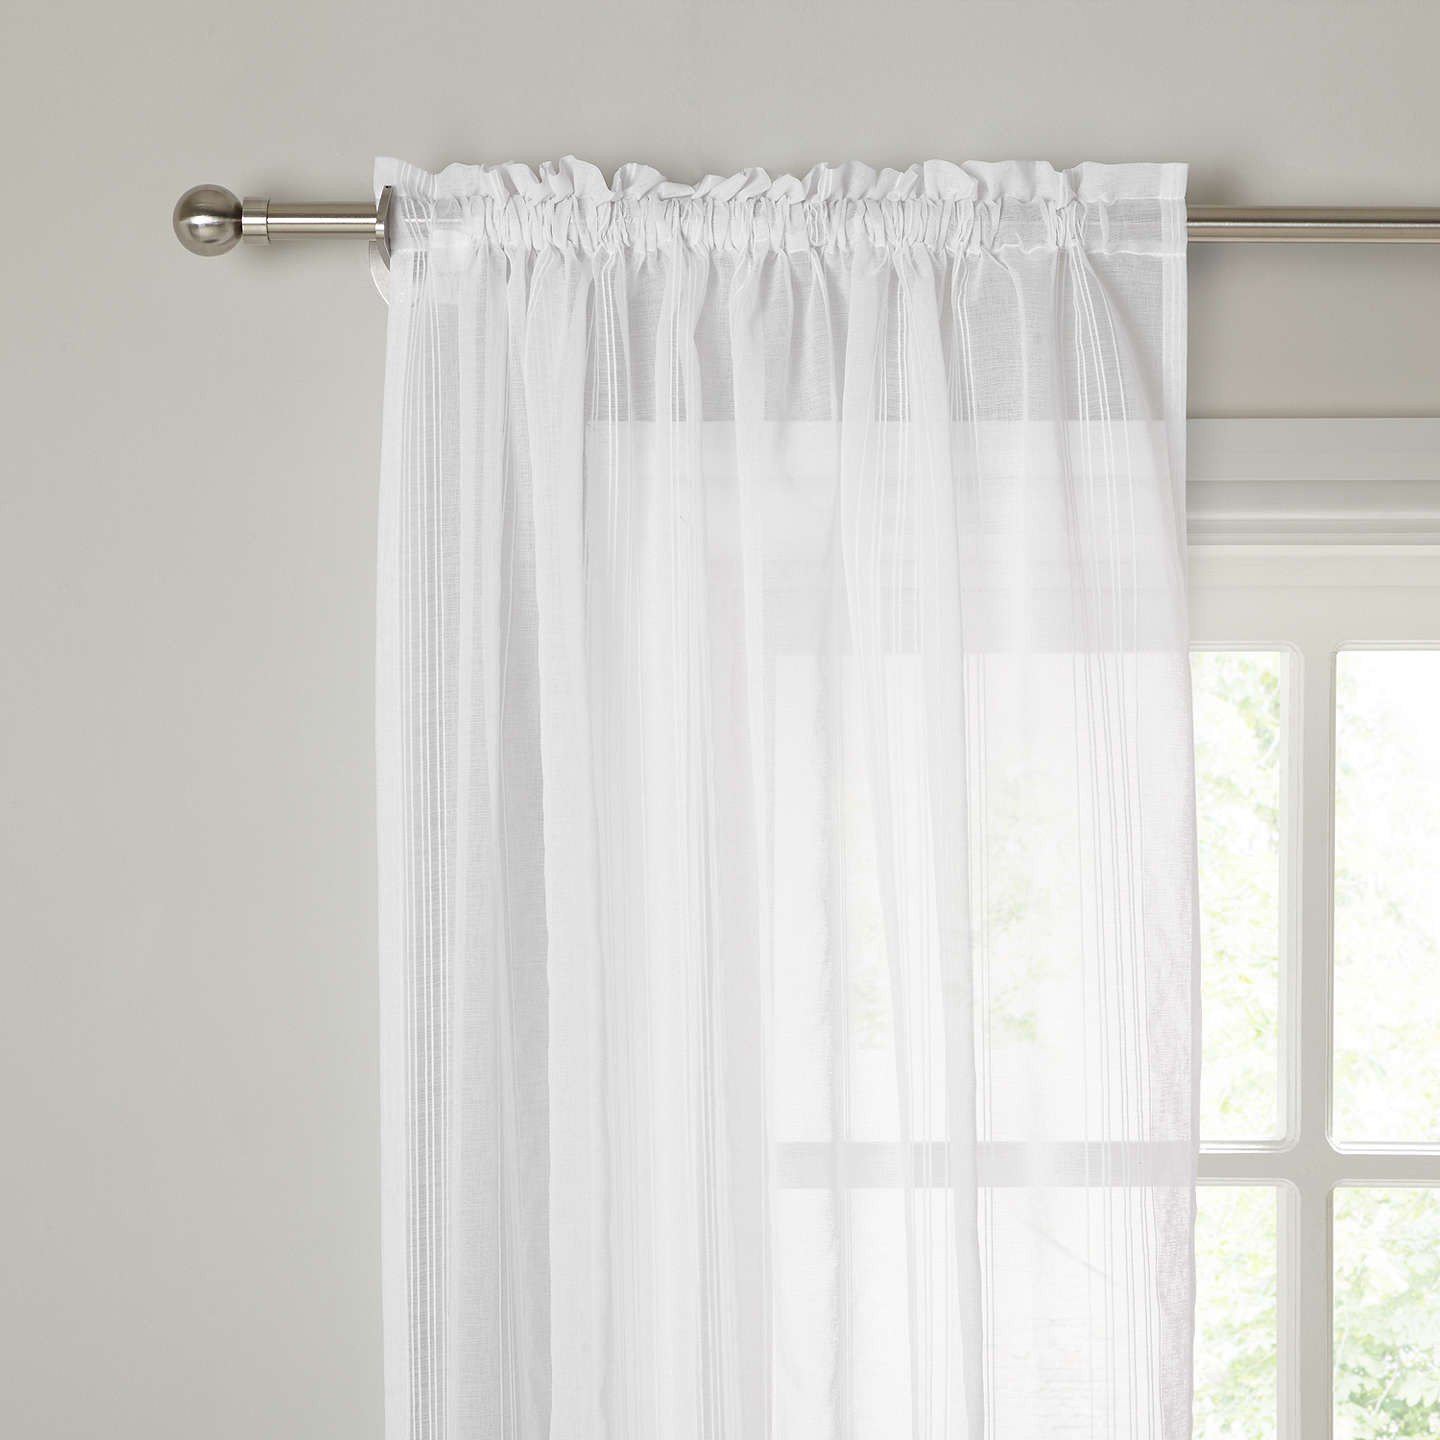 BuyJohn Lewis Florence Slot Top Voile Panel, W150 x Drop 135cm, White Online at johnlewis.com